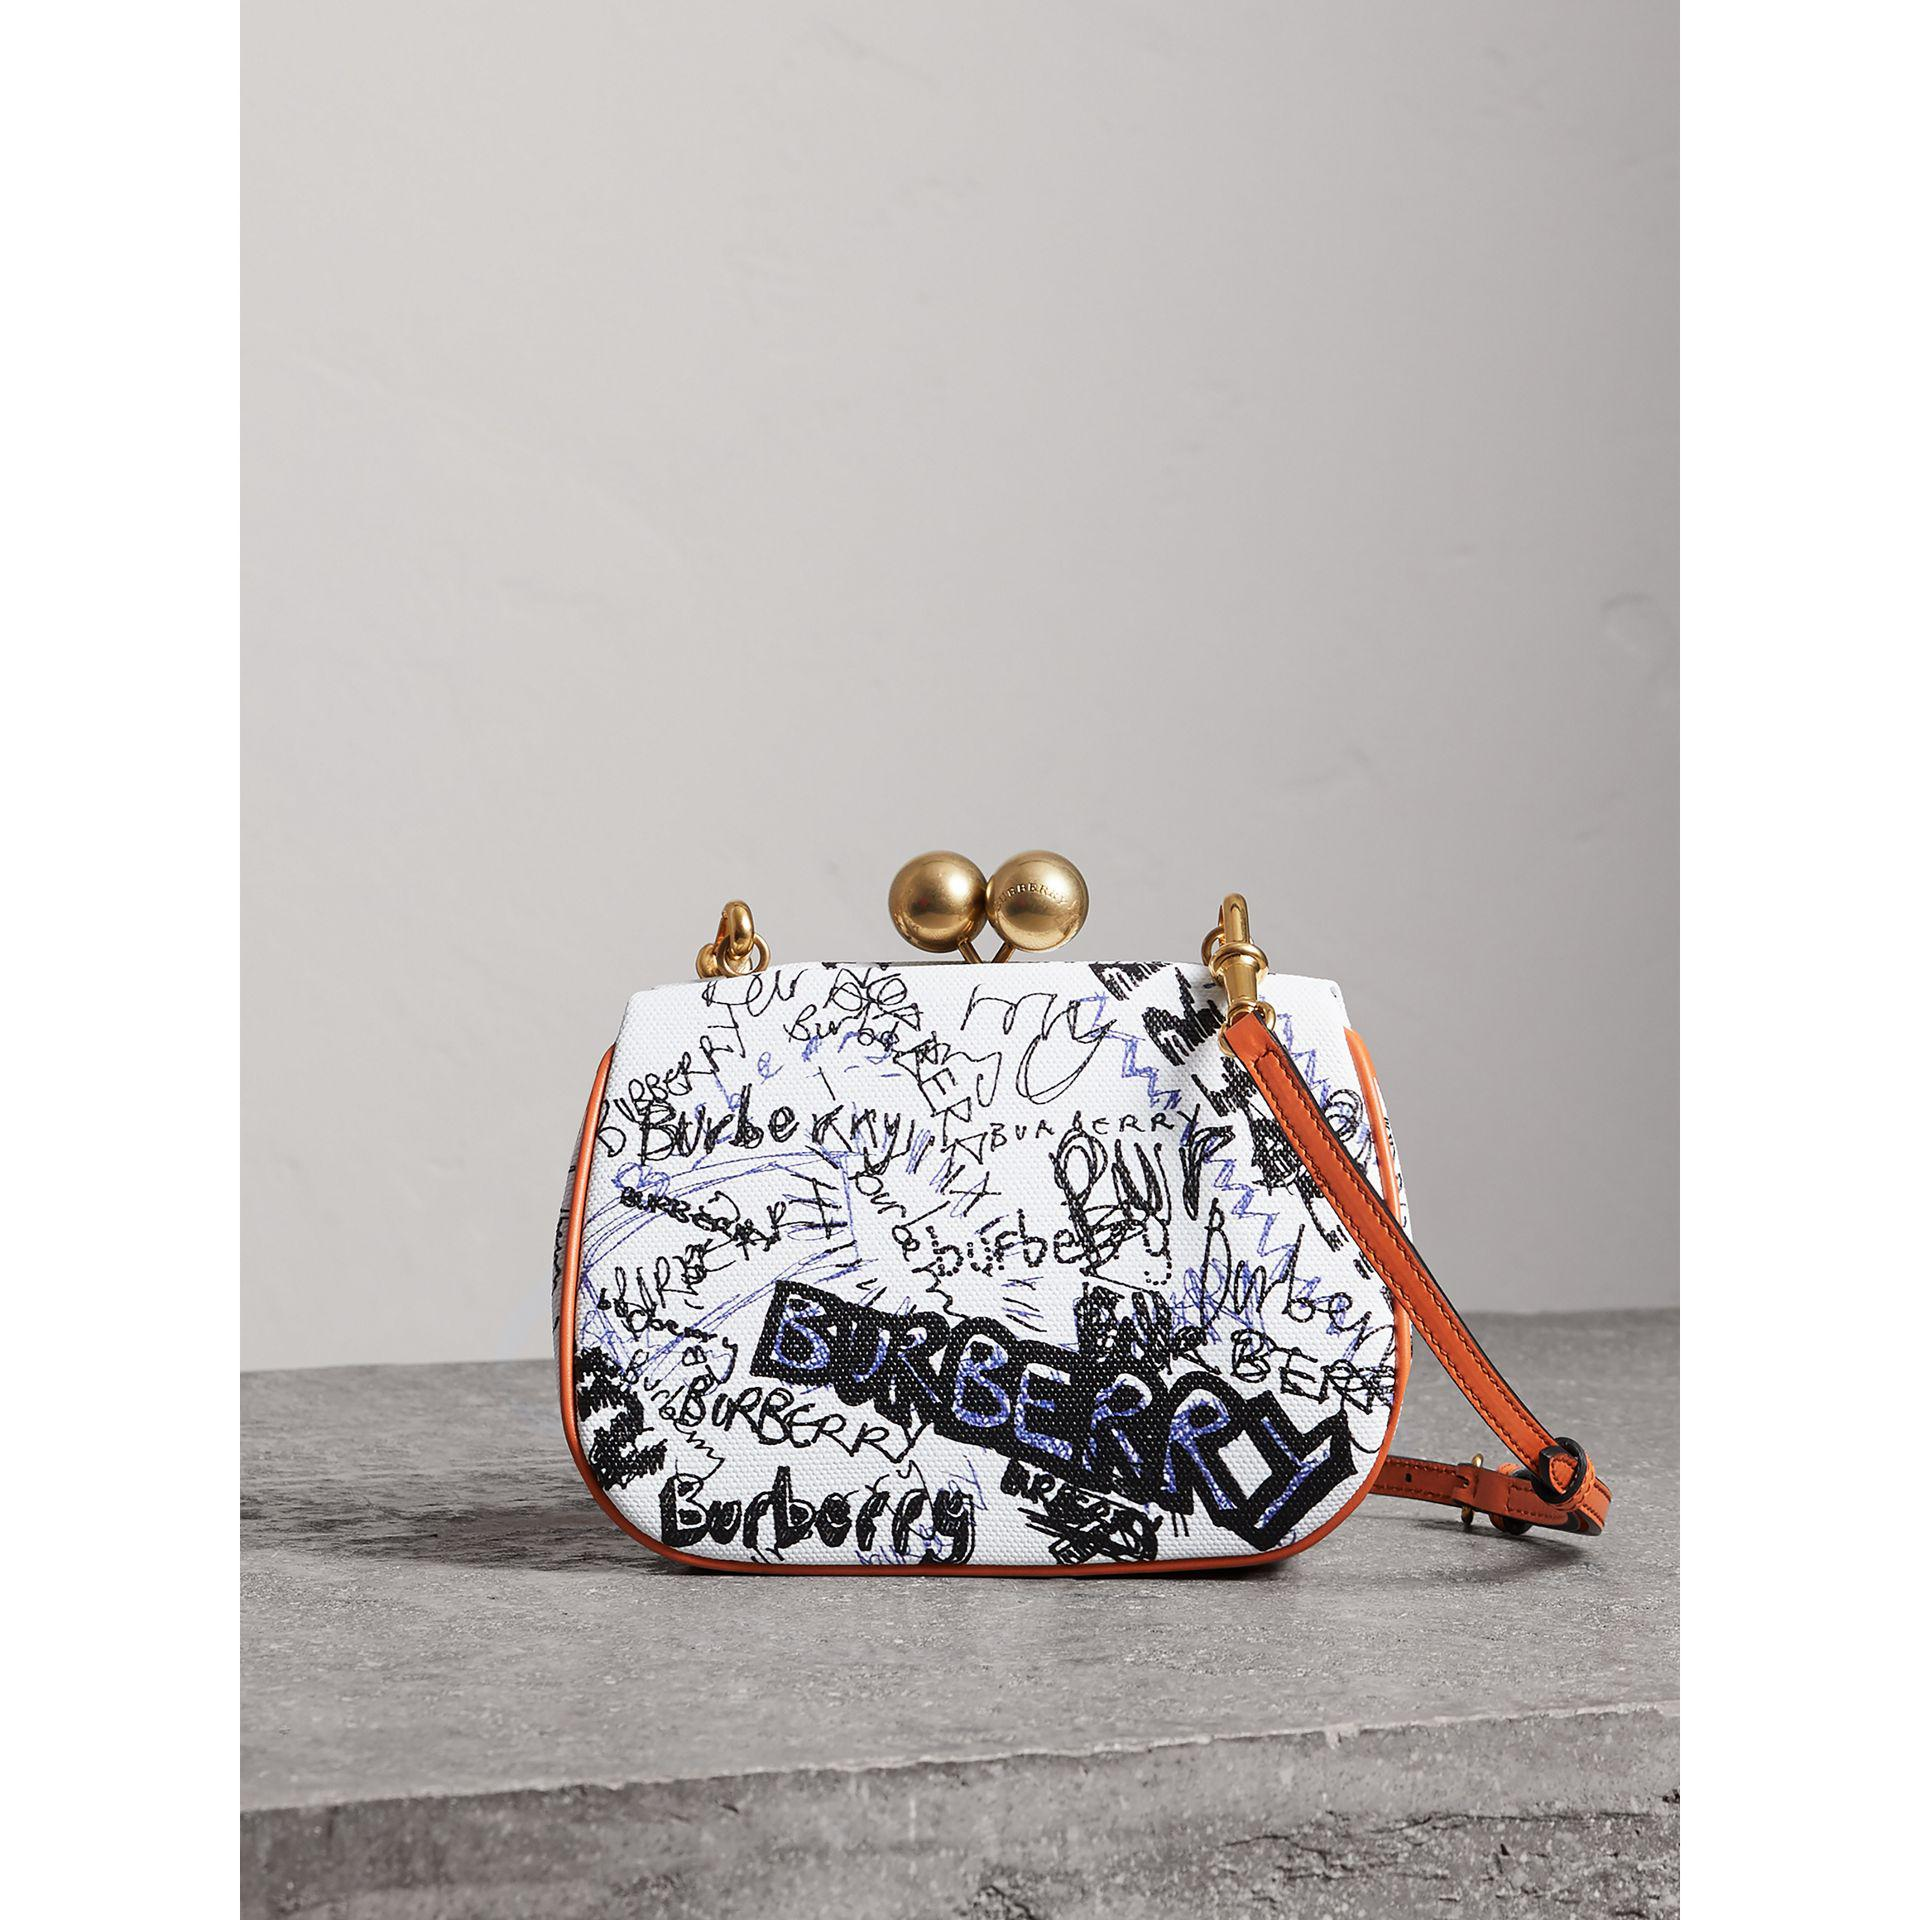 Lyst - Burberry Small Doodle Print Metal Frame Clutch Bag in White 46fbddb60bccc